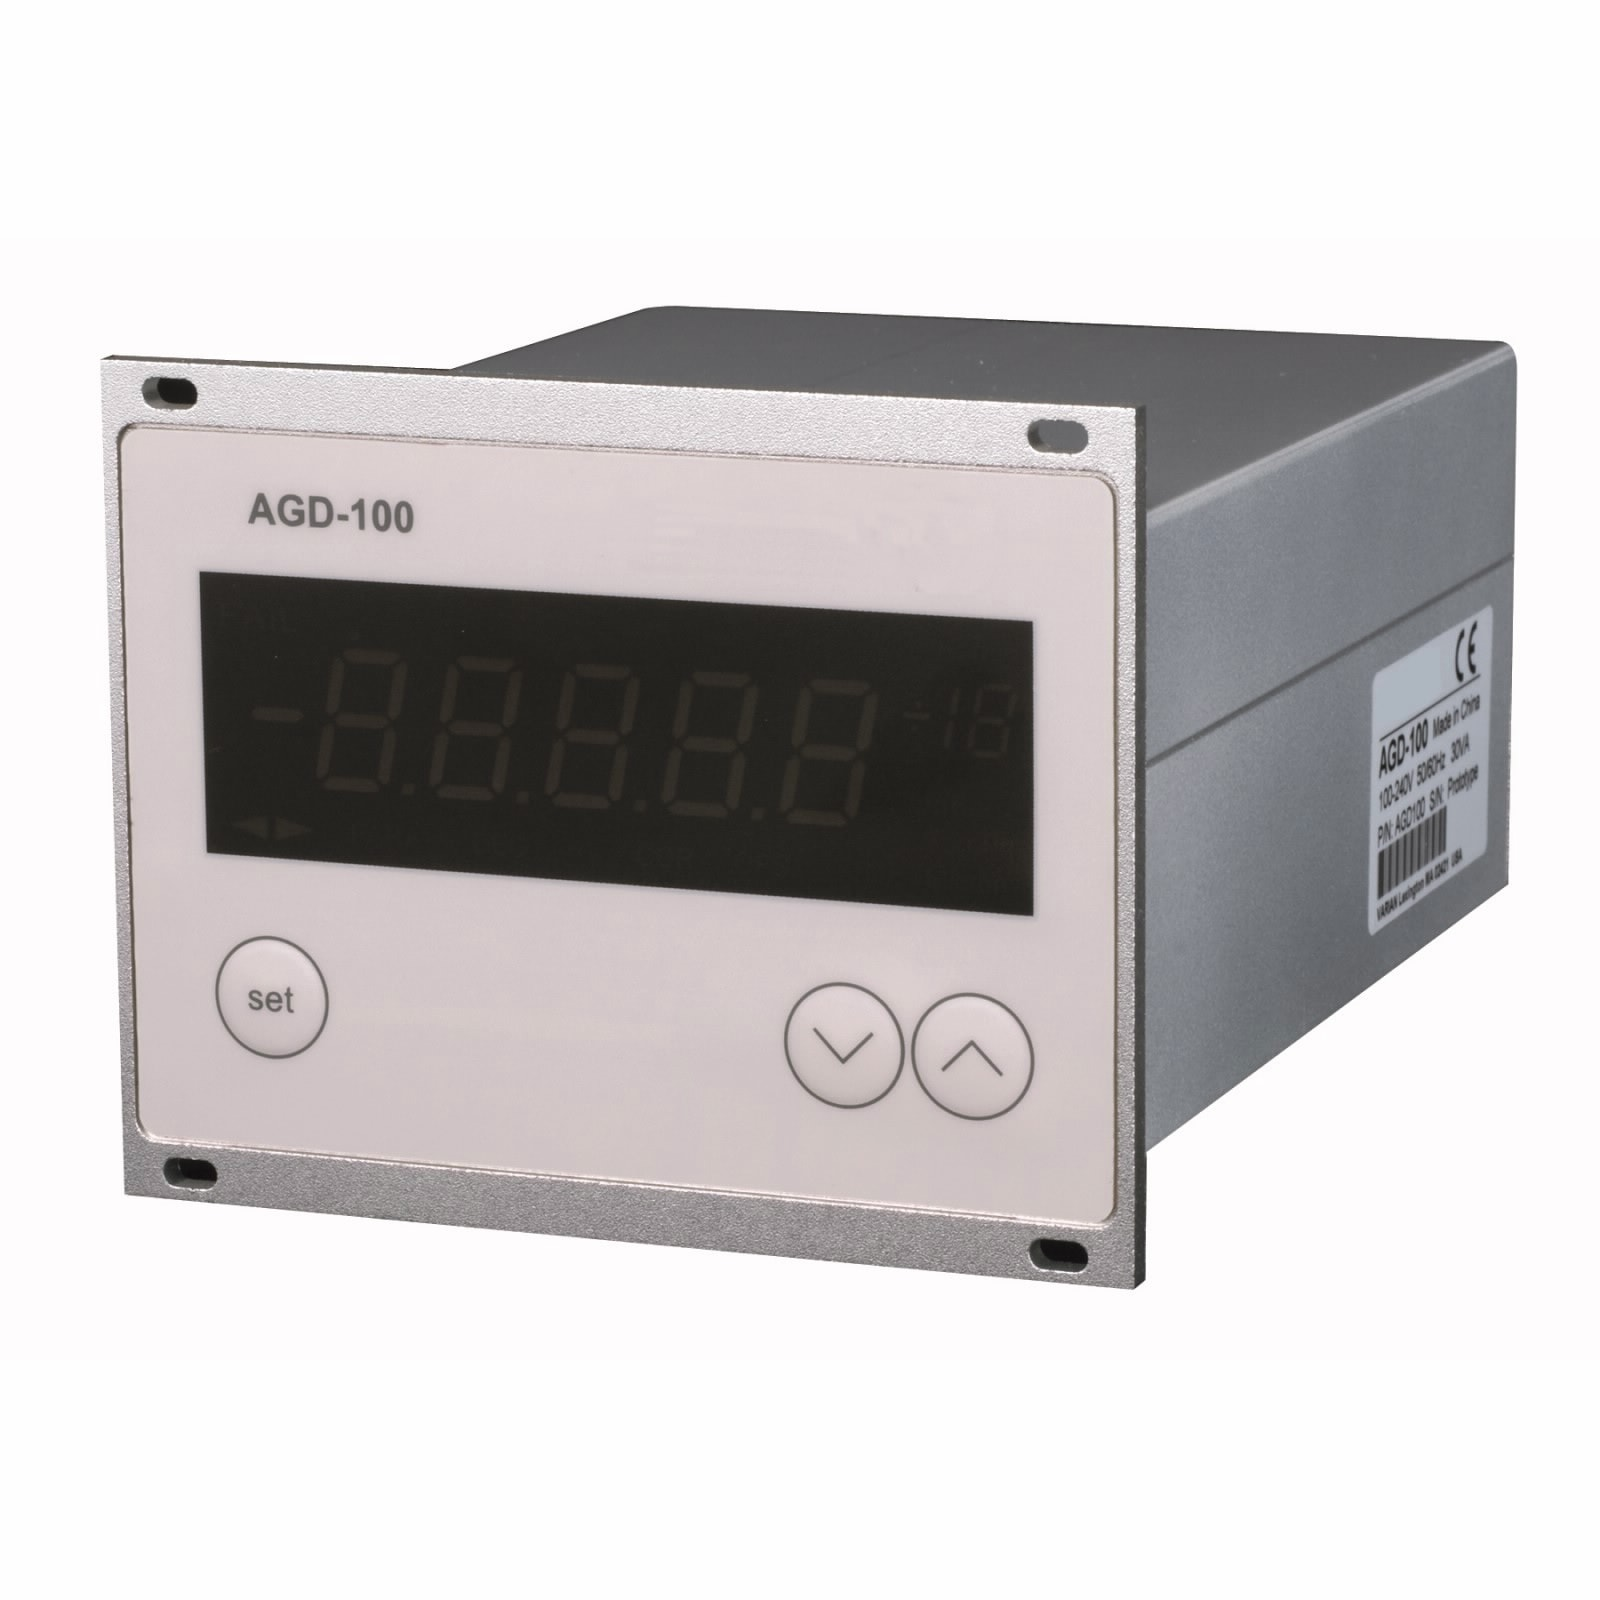 agc 100 agd 100 gauge controllers